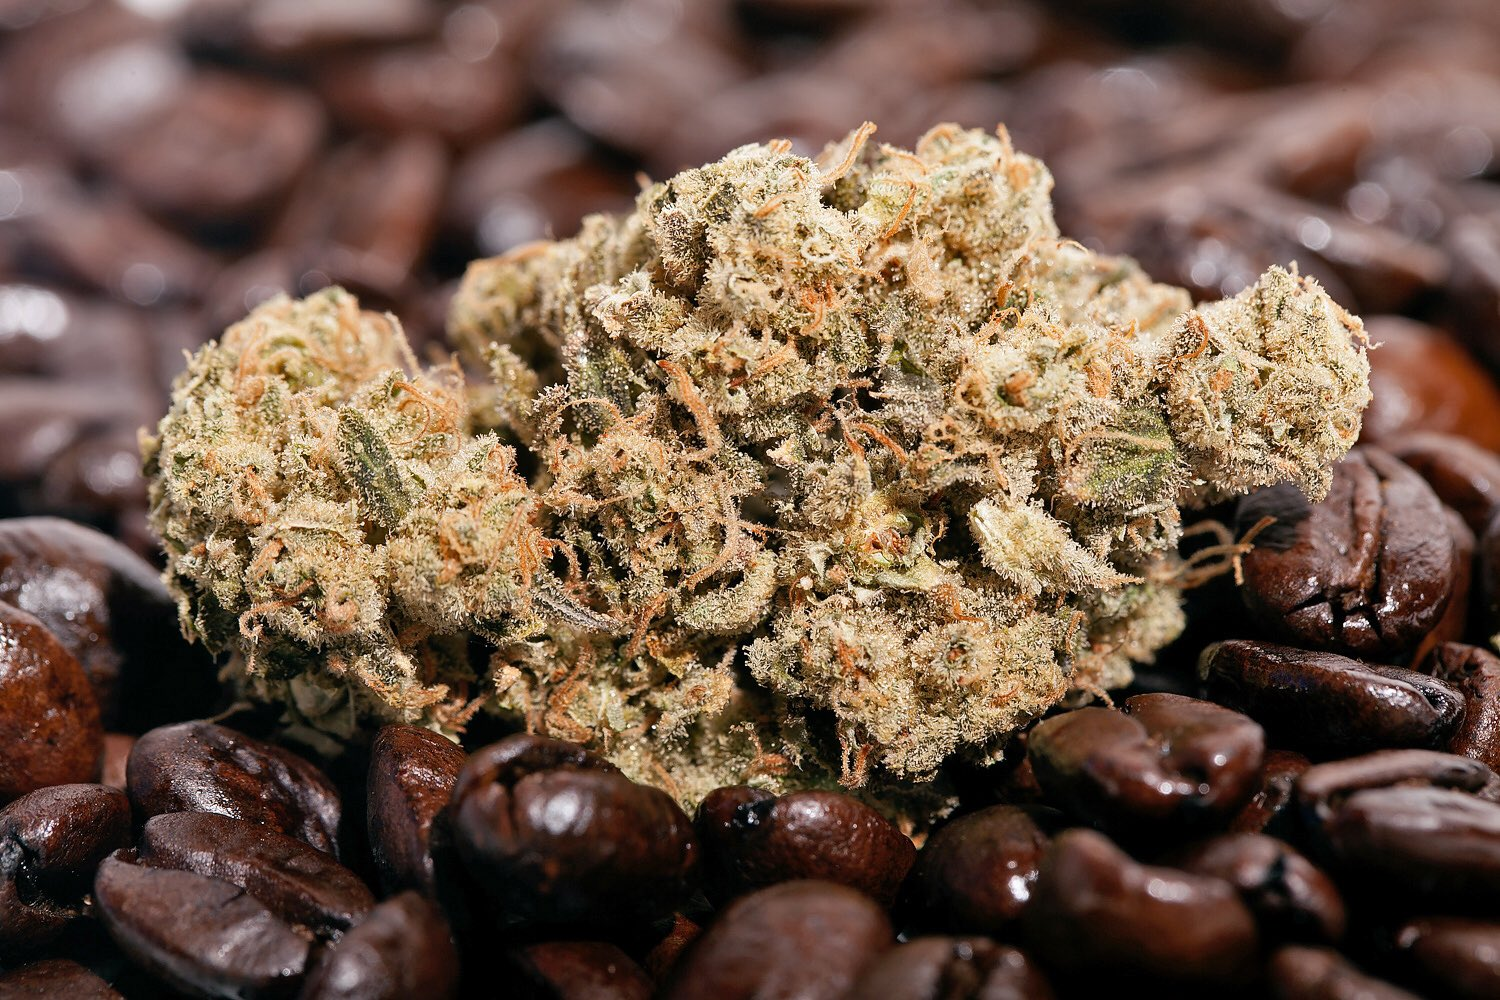 #Retweet for #cannabis!��         ❤️ for #coffee!☕️ https://t.co/AdVrkzdnOo